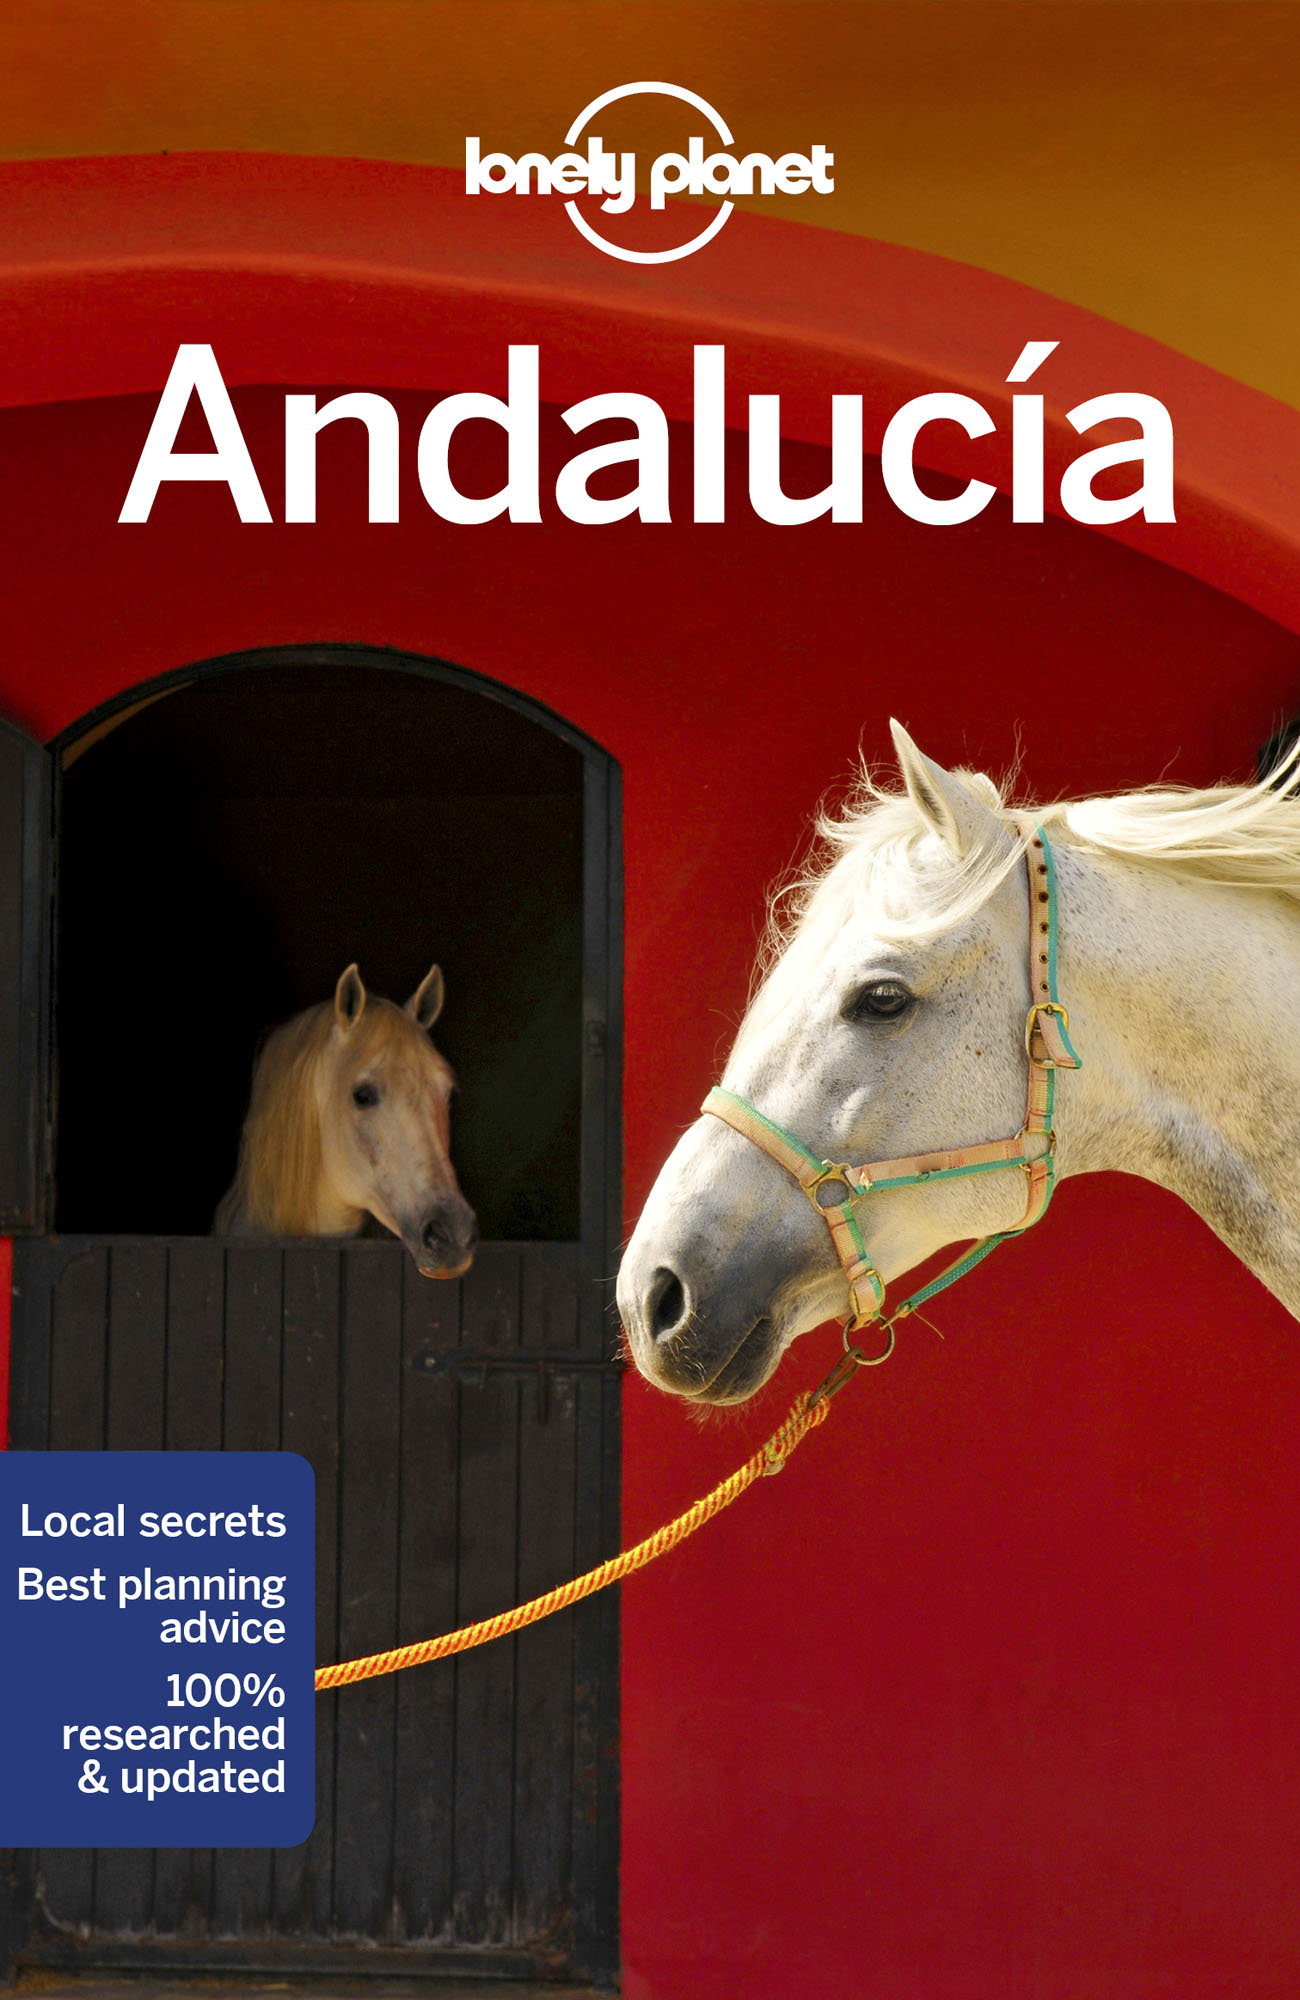 Andalusie (Andalucia) průvodce 9th 2019 Lonely Planet